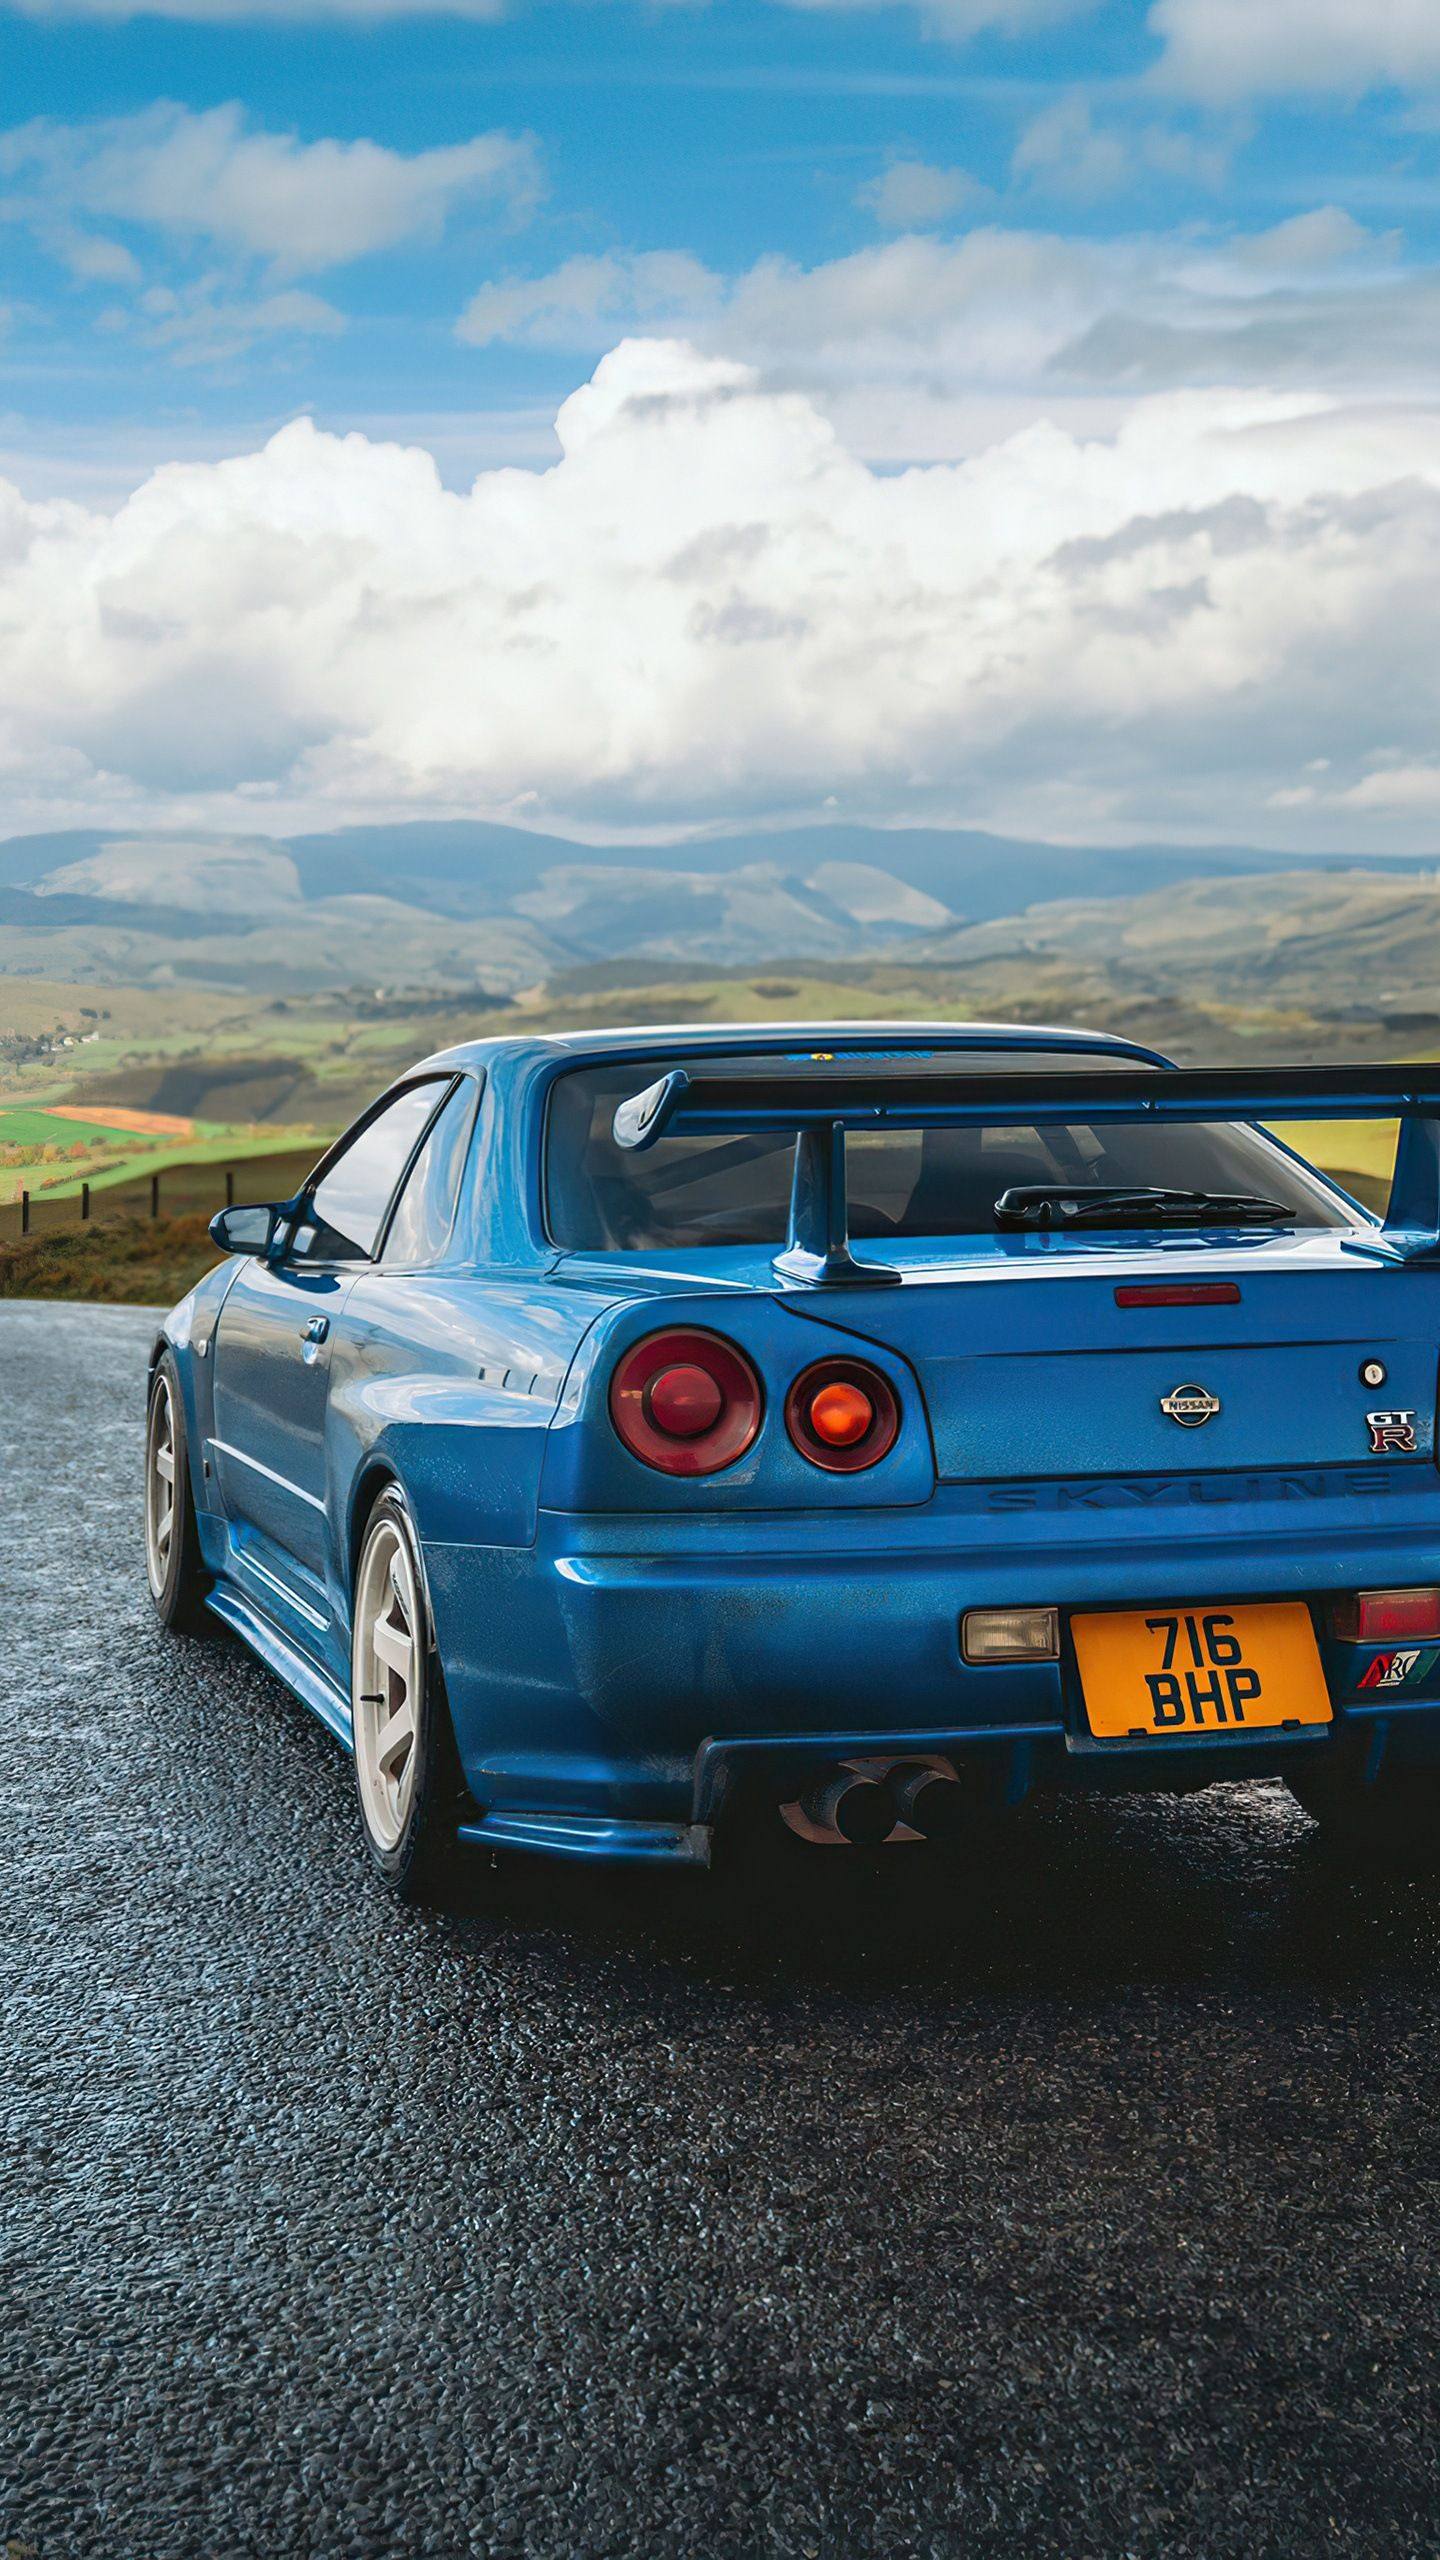 Cars Mobile Full Hd Wallpapers 1440x2560 002 In 2021 Nissan Skyline R34 Nissan Gtr Skyline Nissan Skyline